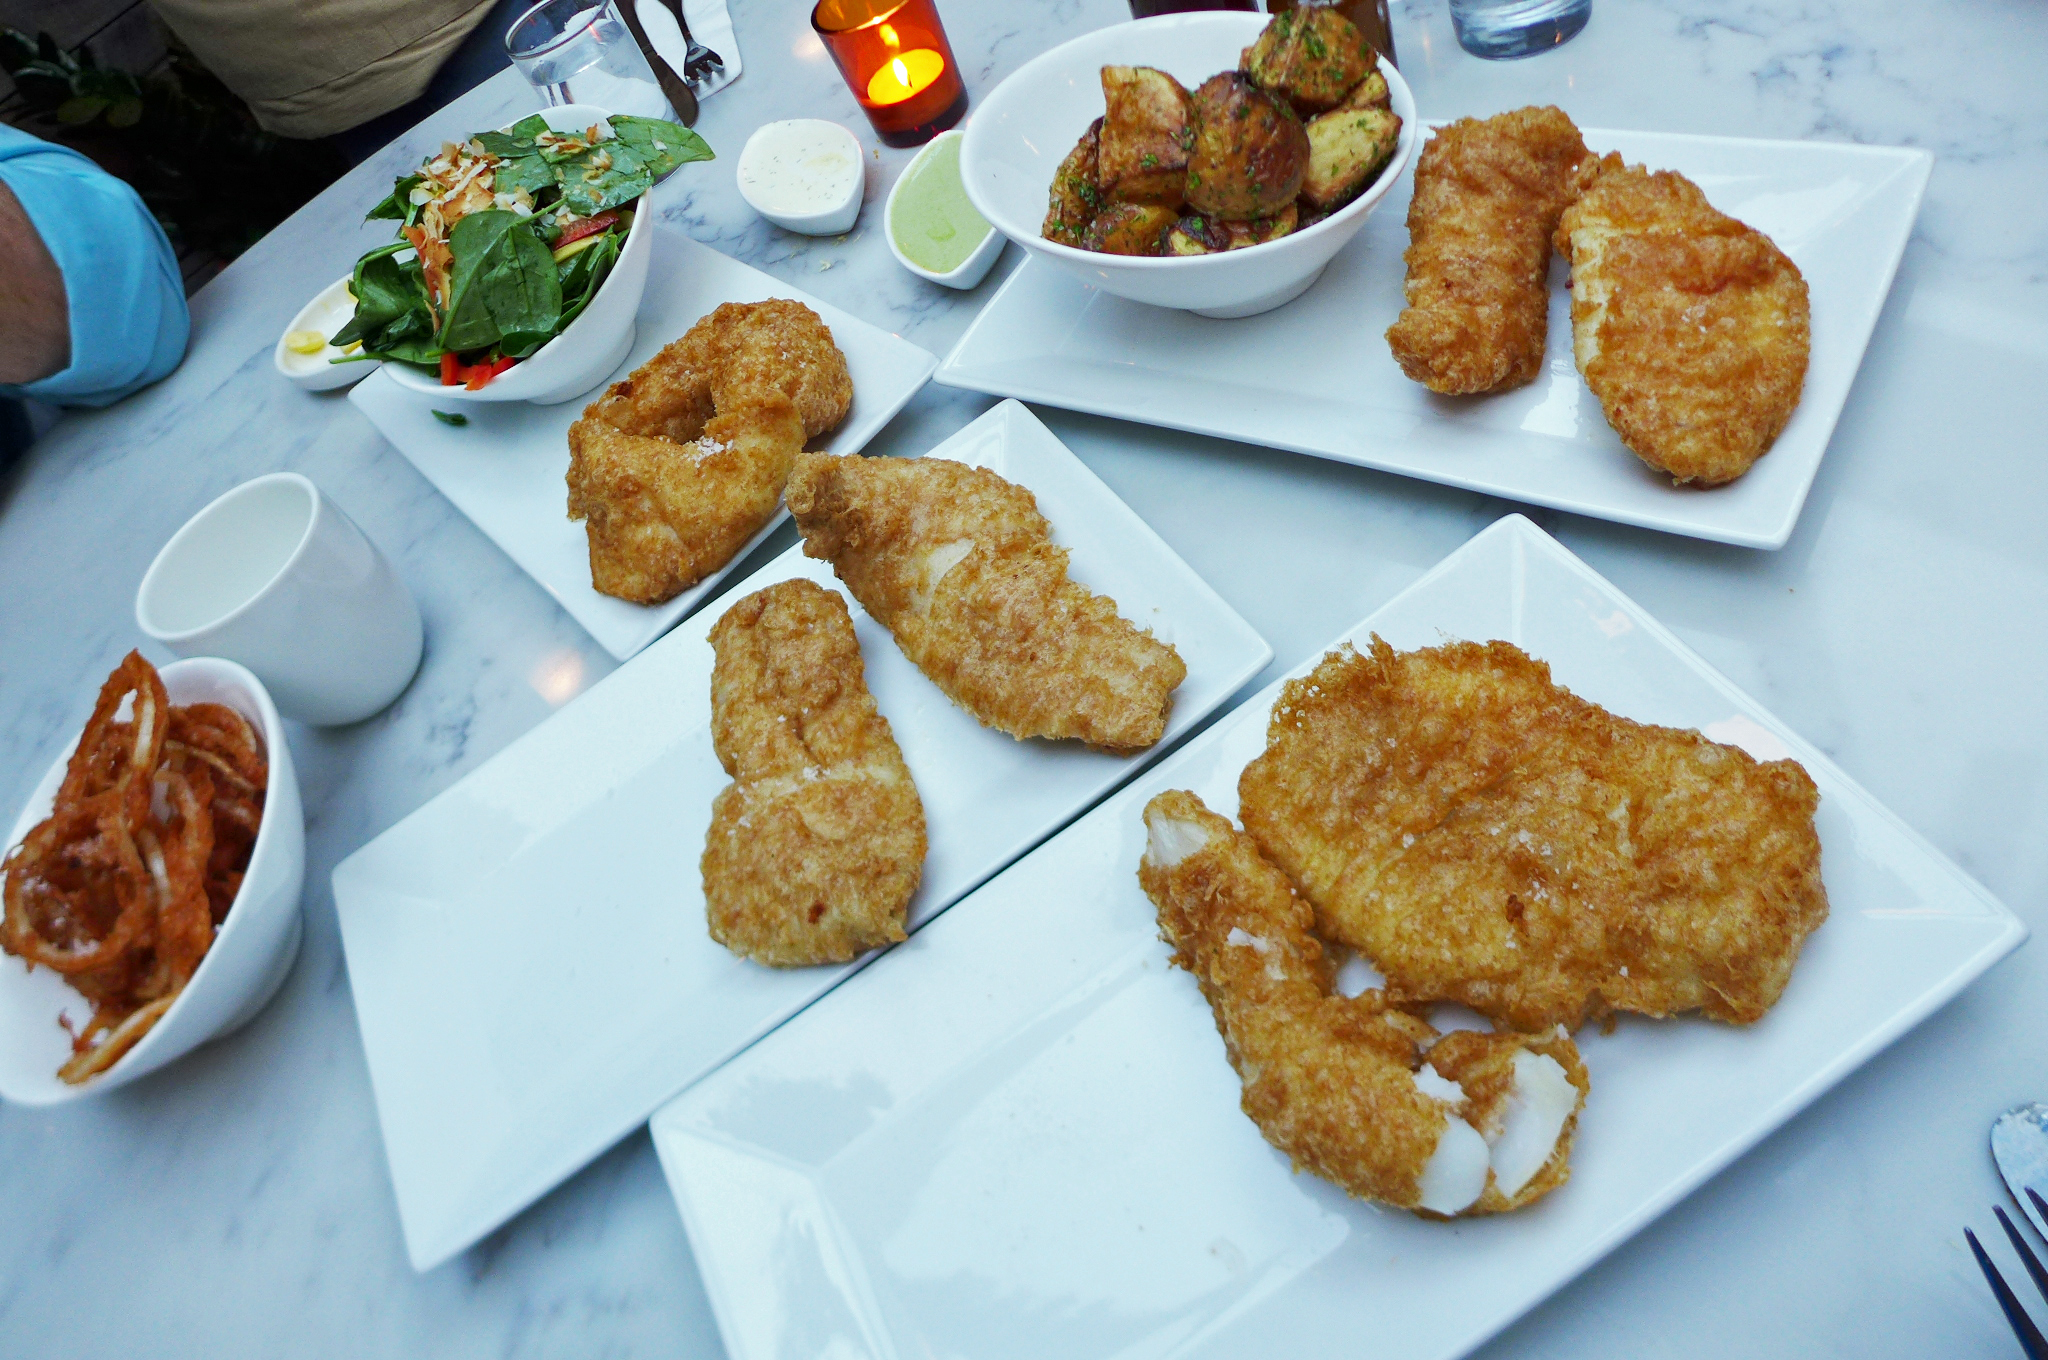 Fish no chips at icelandic fish chips eater ny for Icelandic fish and chips nyc